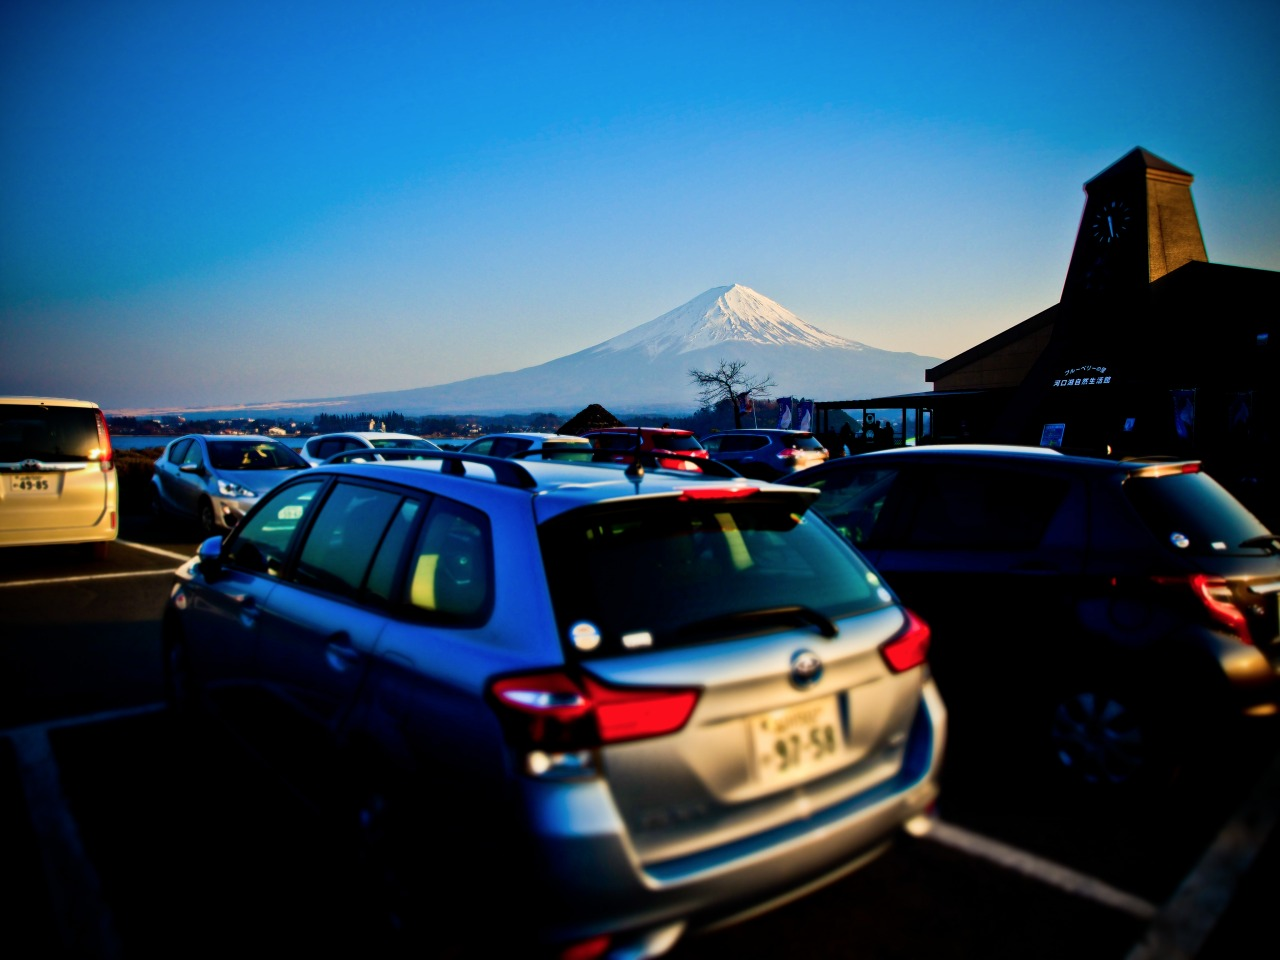 Mt. Fuji view from the rental car @ 大石公園